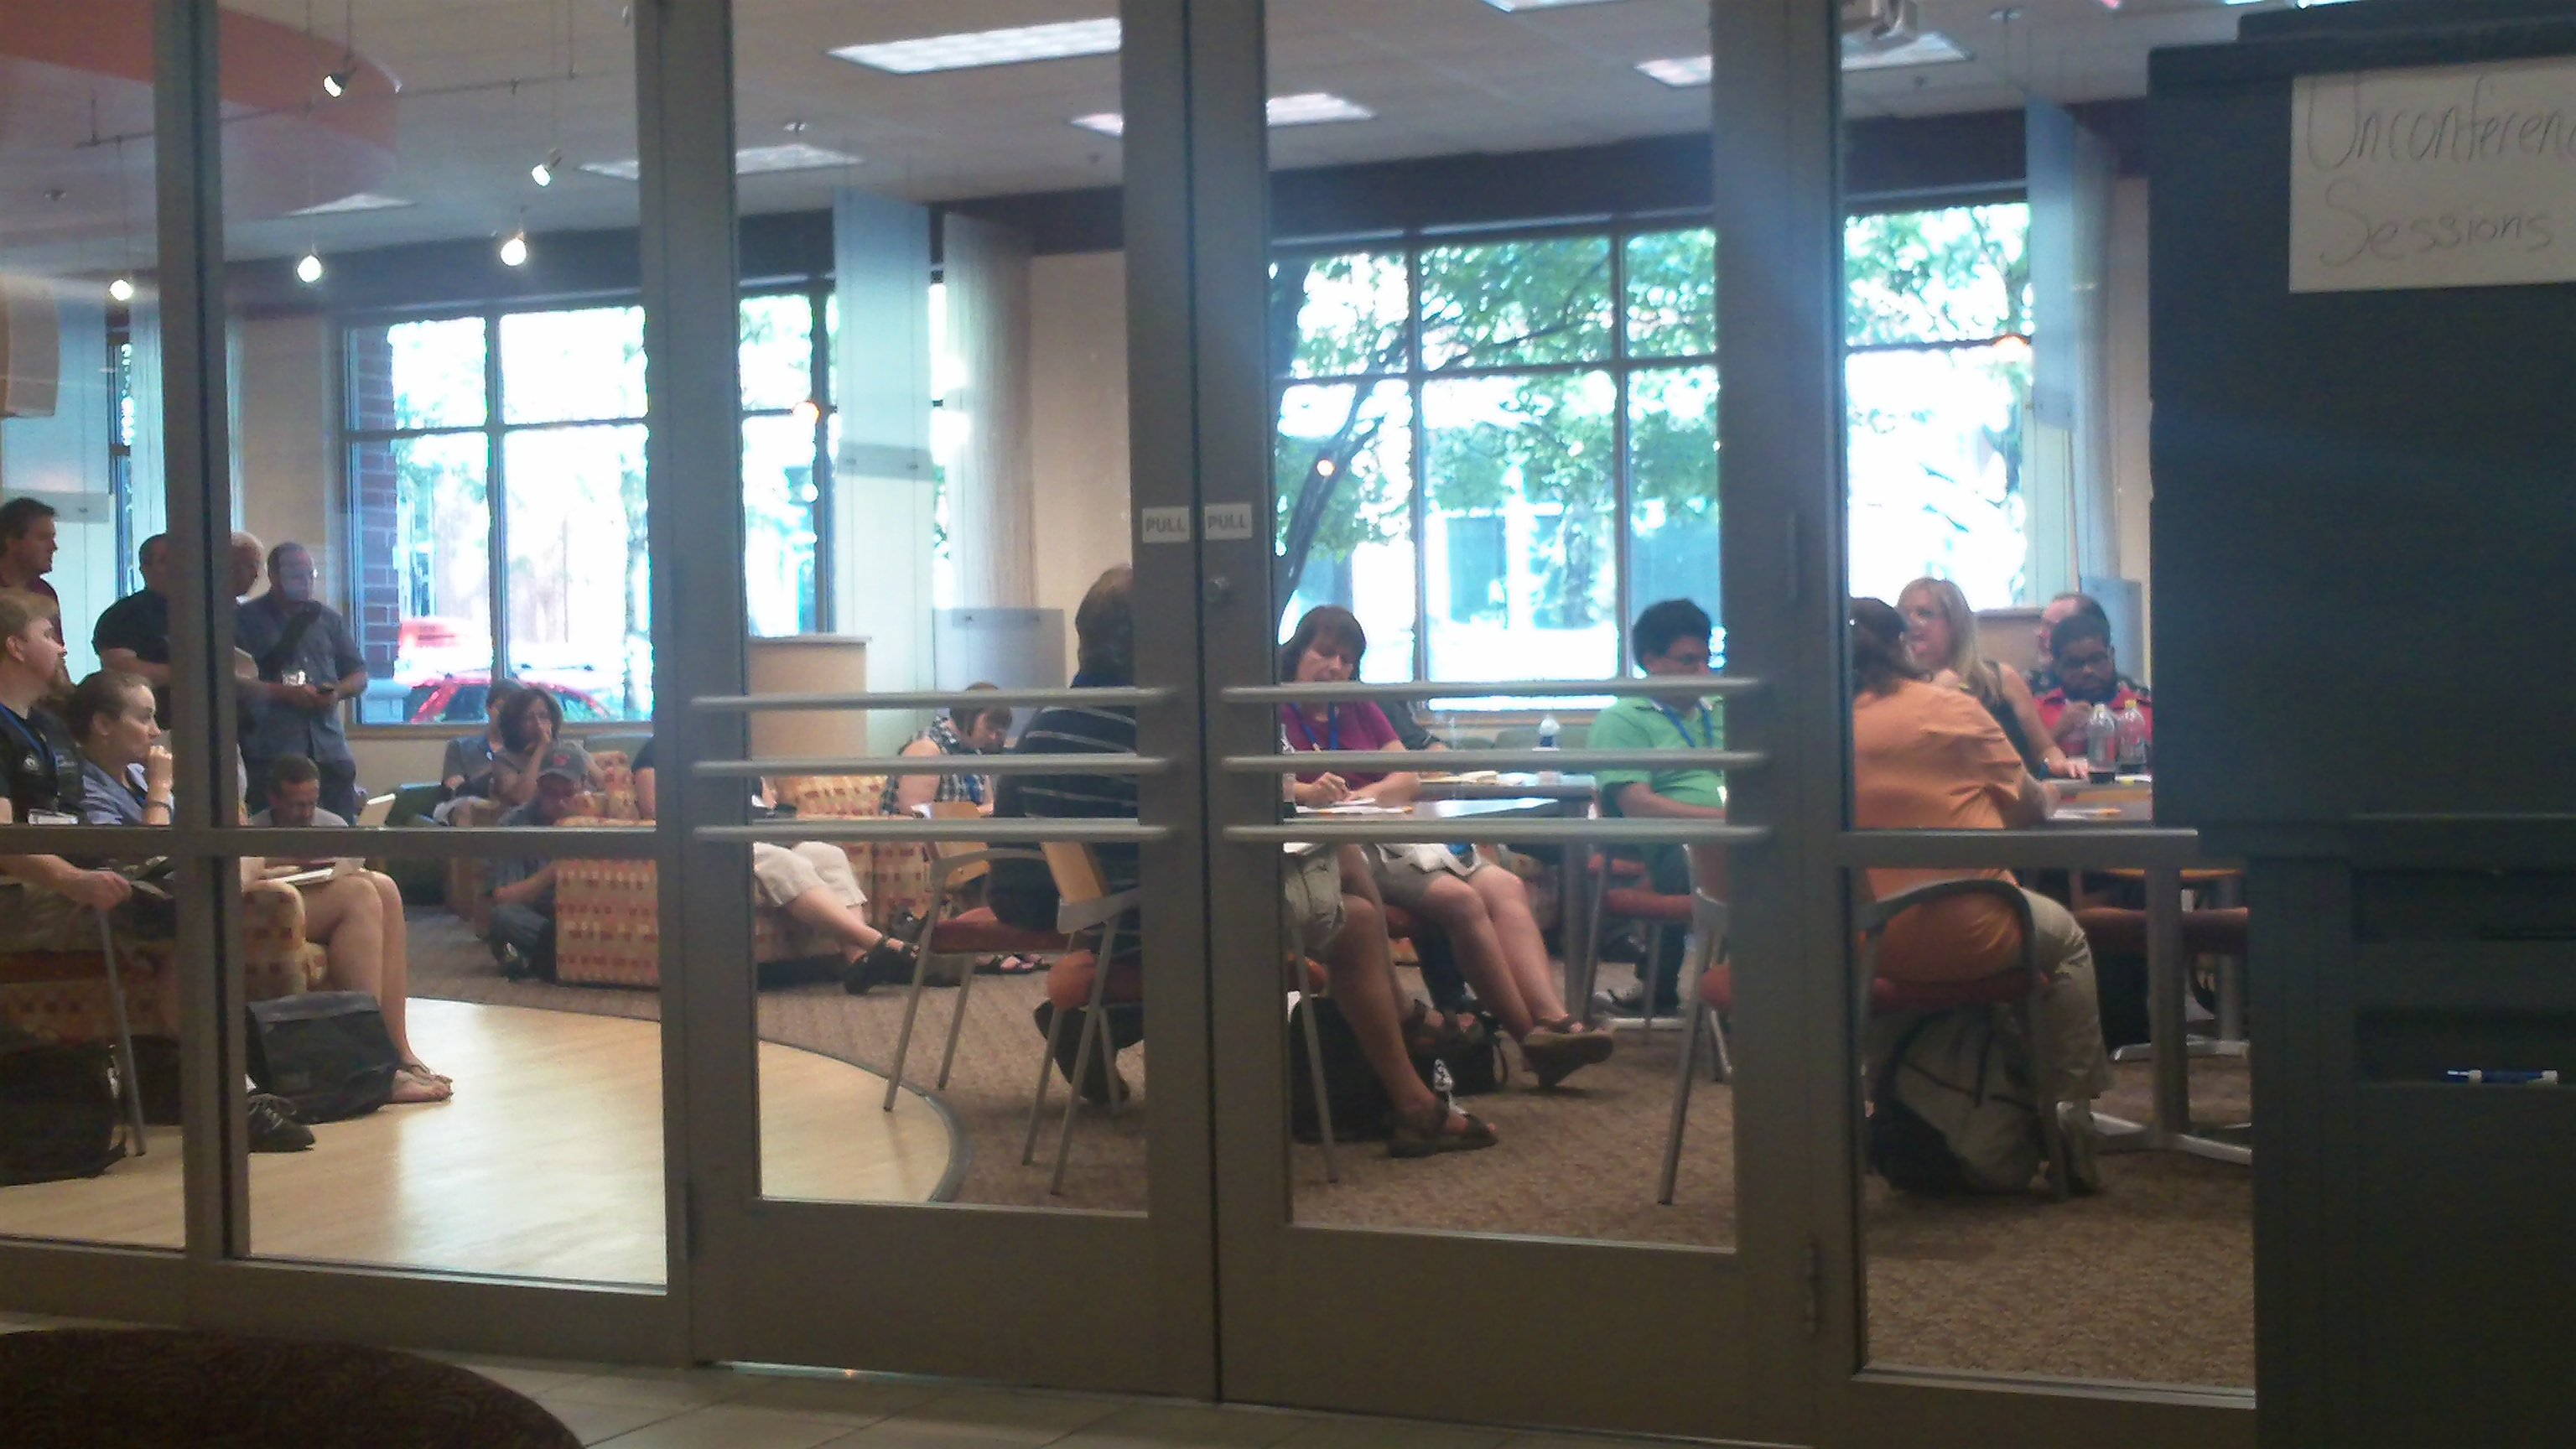 People sitting in a room behind glass doors